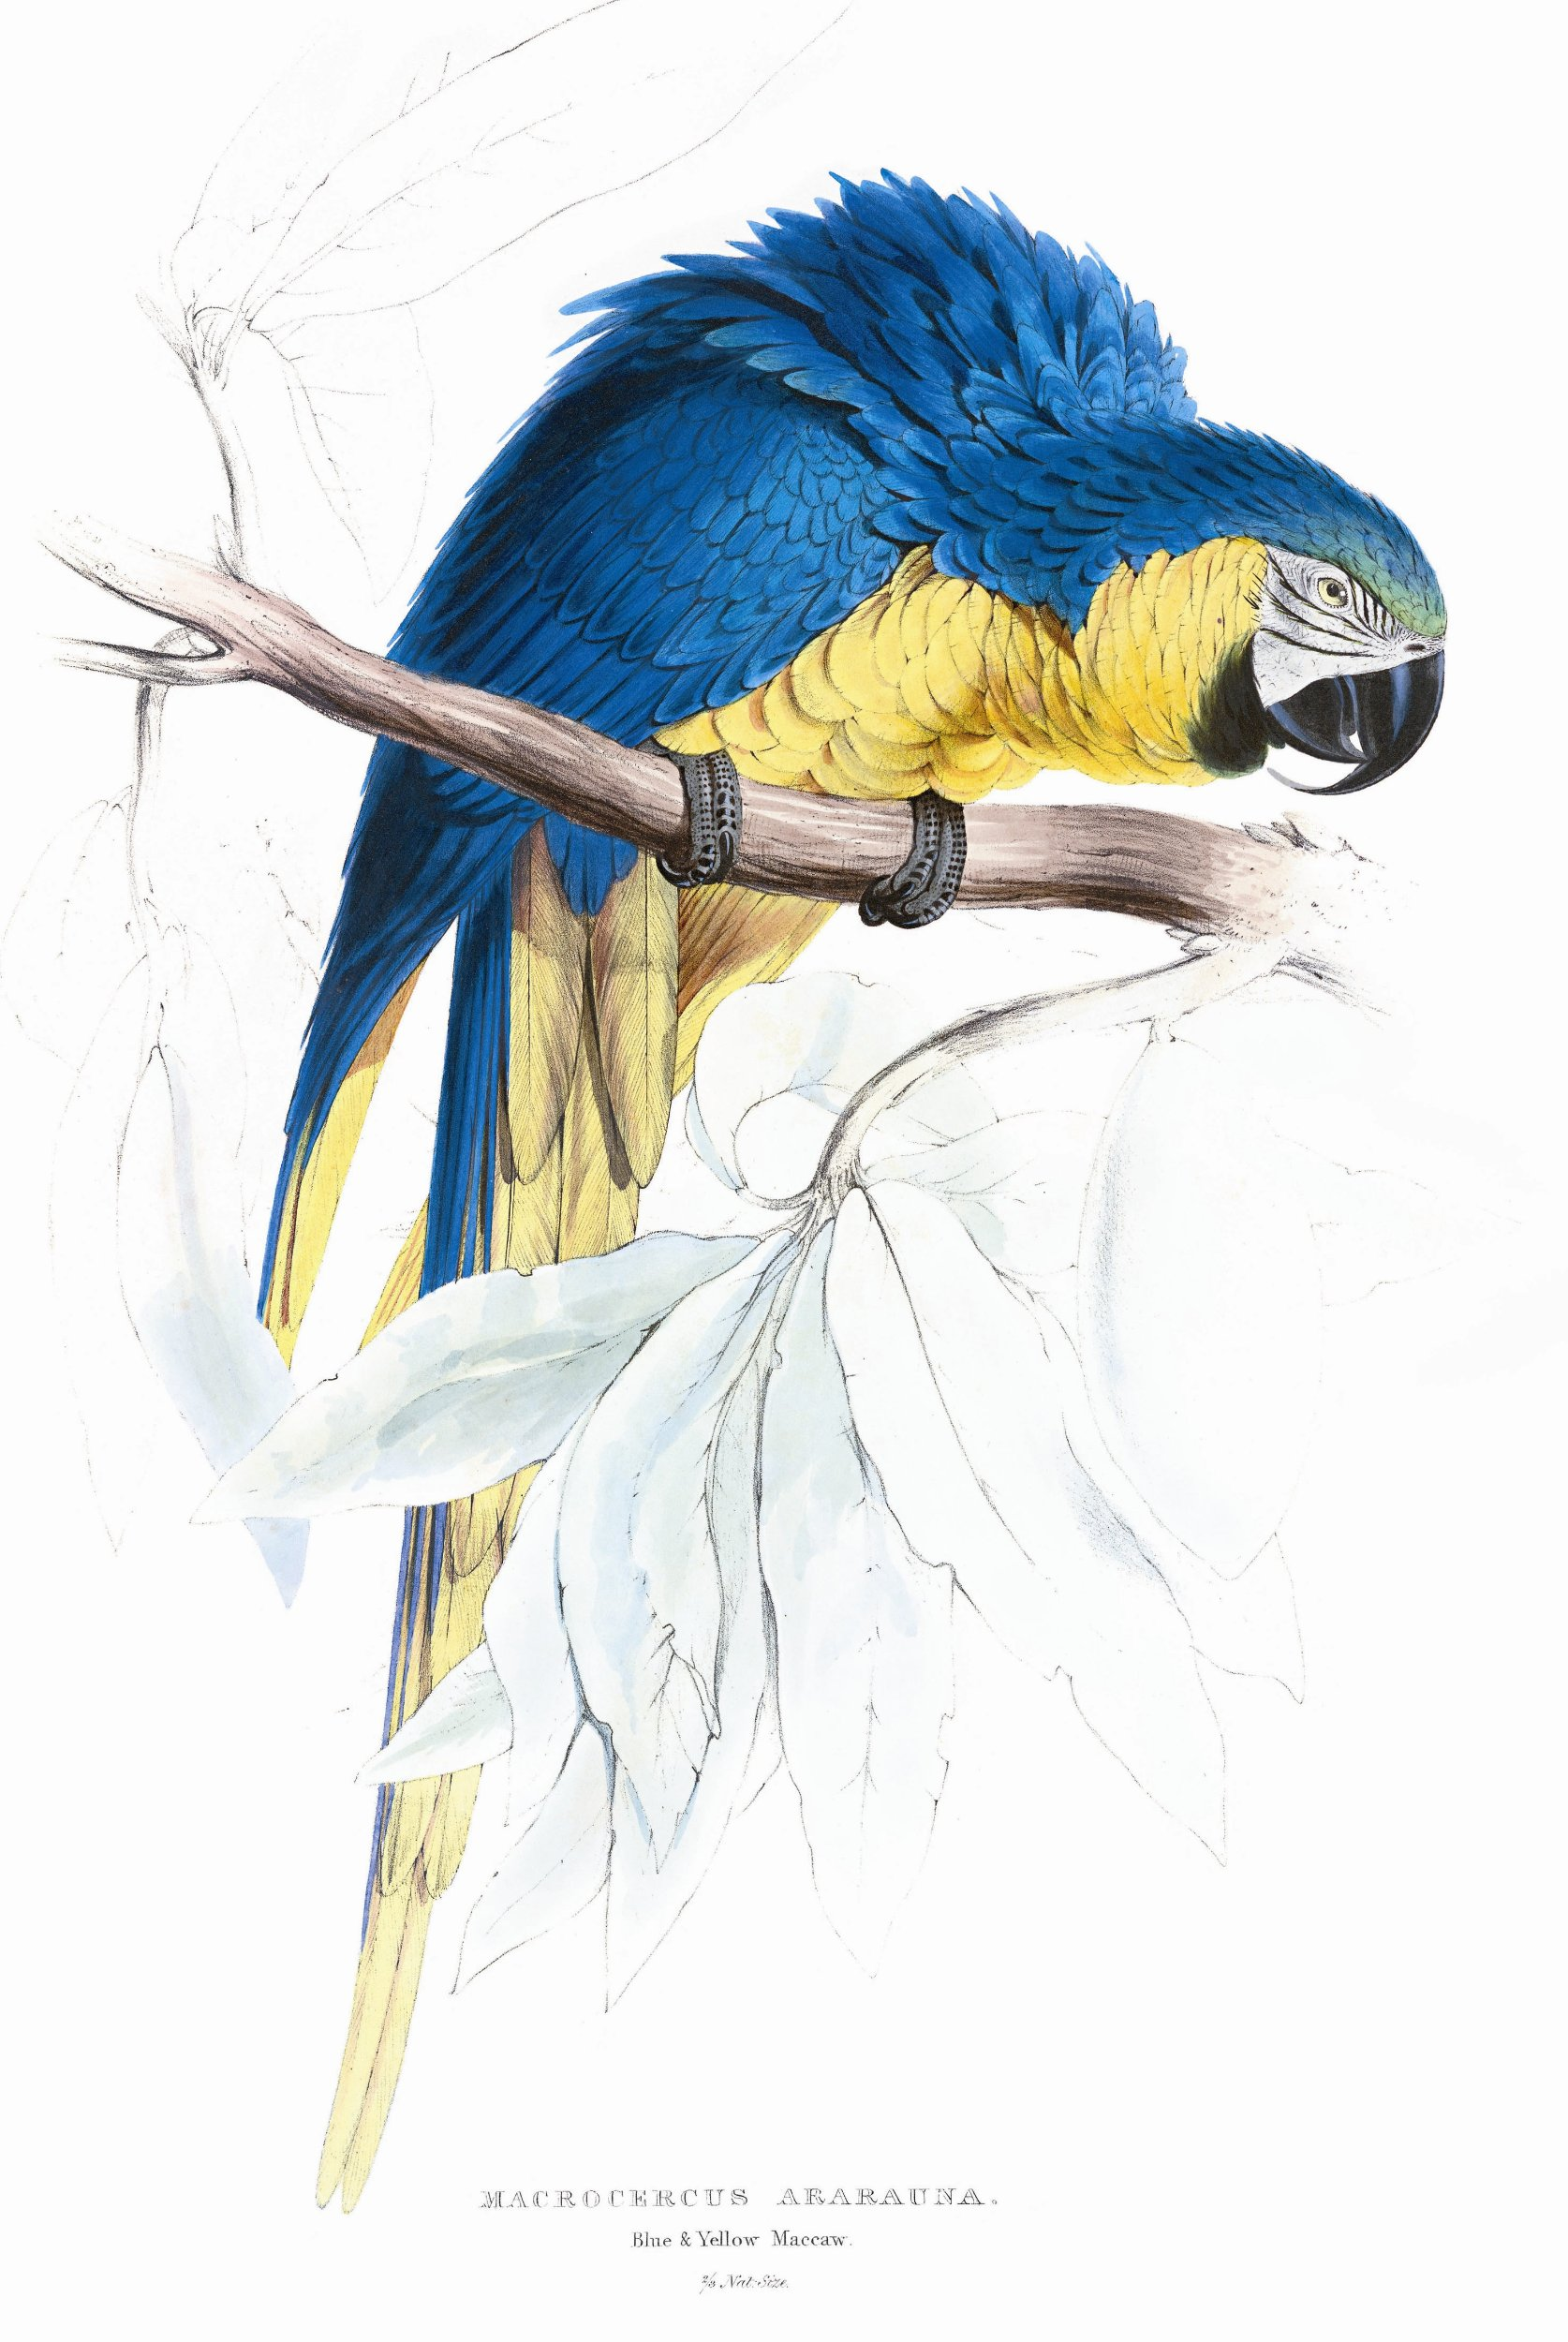 Edward Lear, Parrots: The Complete Plates: Amazon.co.uk: Francesco Solinas,  Solphia Willmann, Edward Lear: 9783822852743: Books